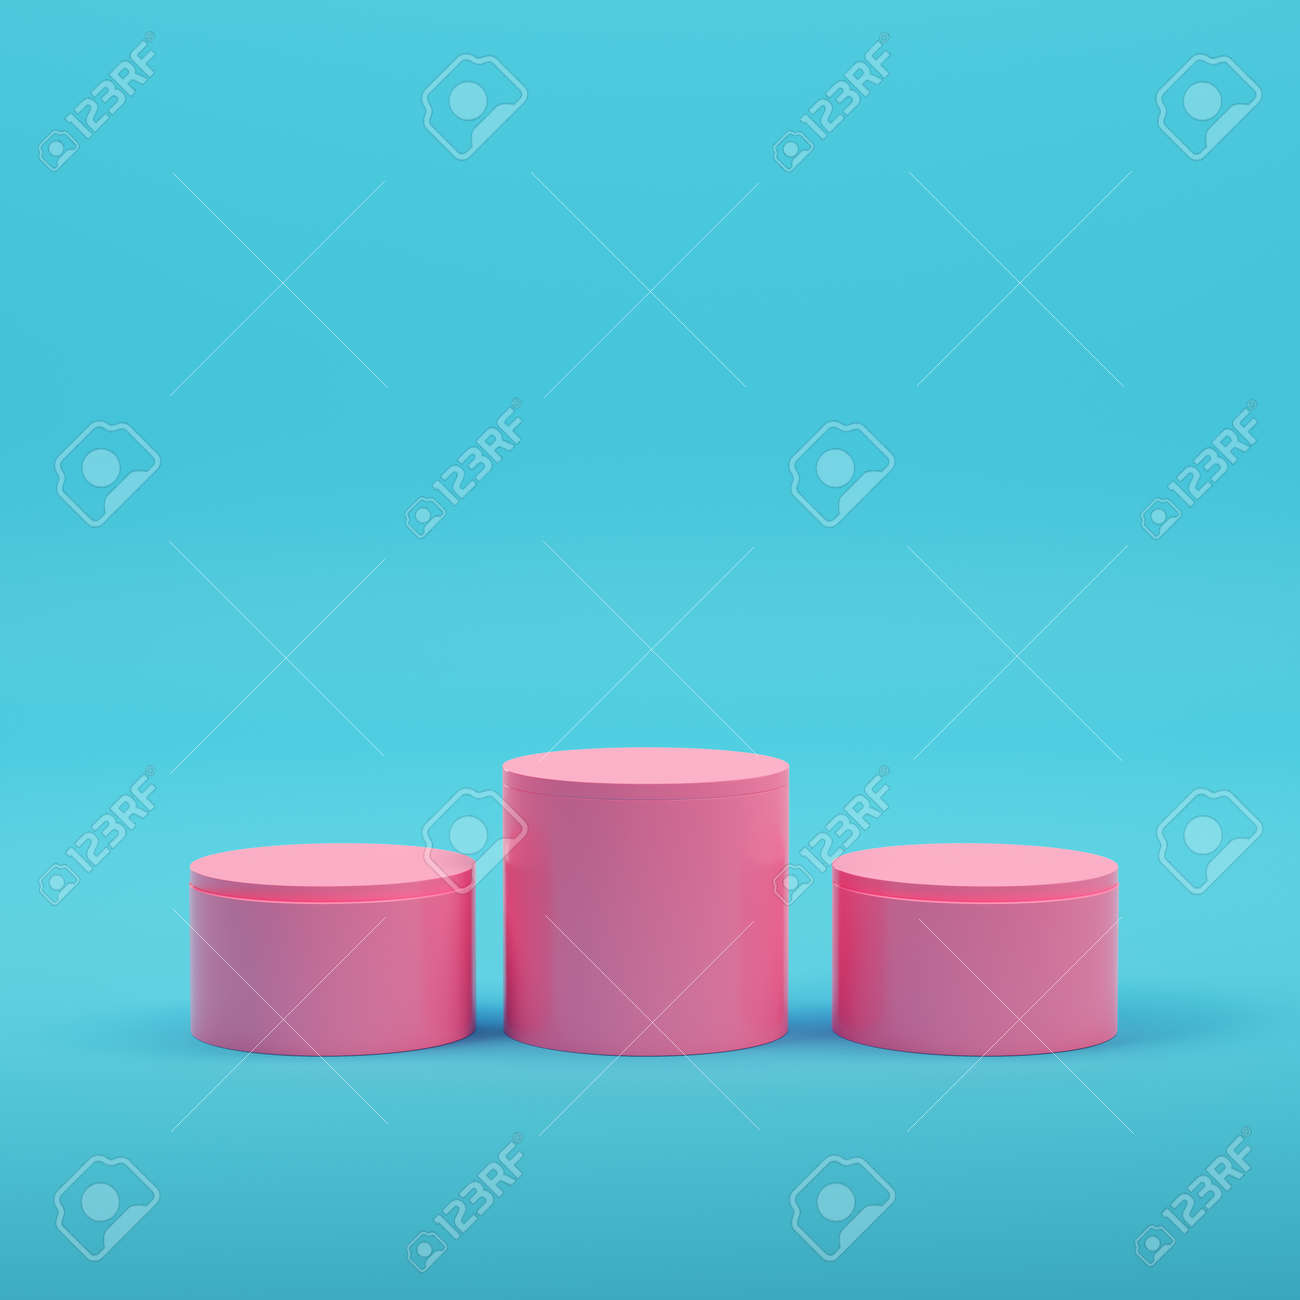 Pink empty glowing product display on bright blue background in pastel colors. Minimalism concept. 3d render - 172255040